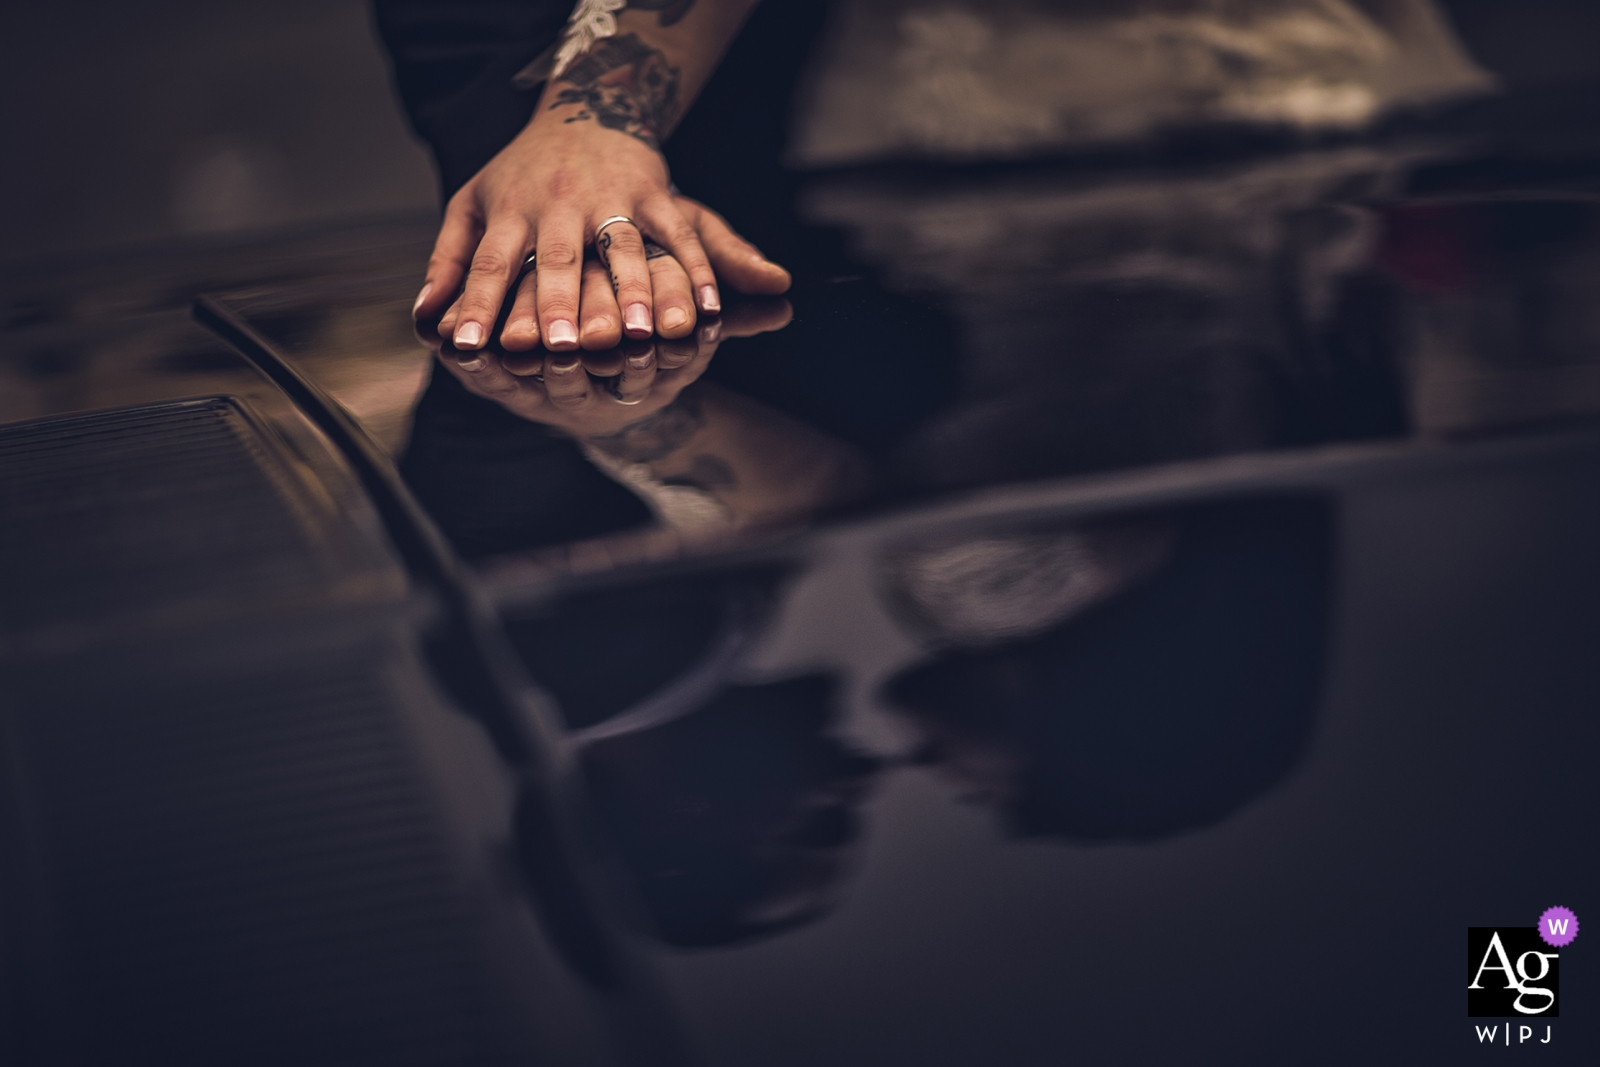 Sarzana wedding photographer | Details of love reflected in this car hood portrait